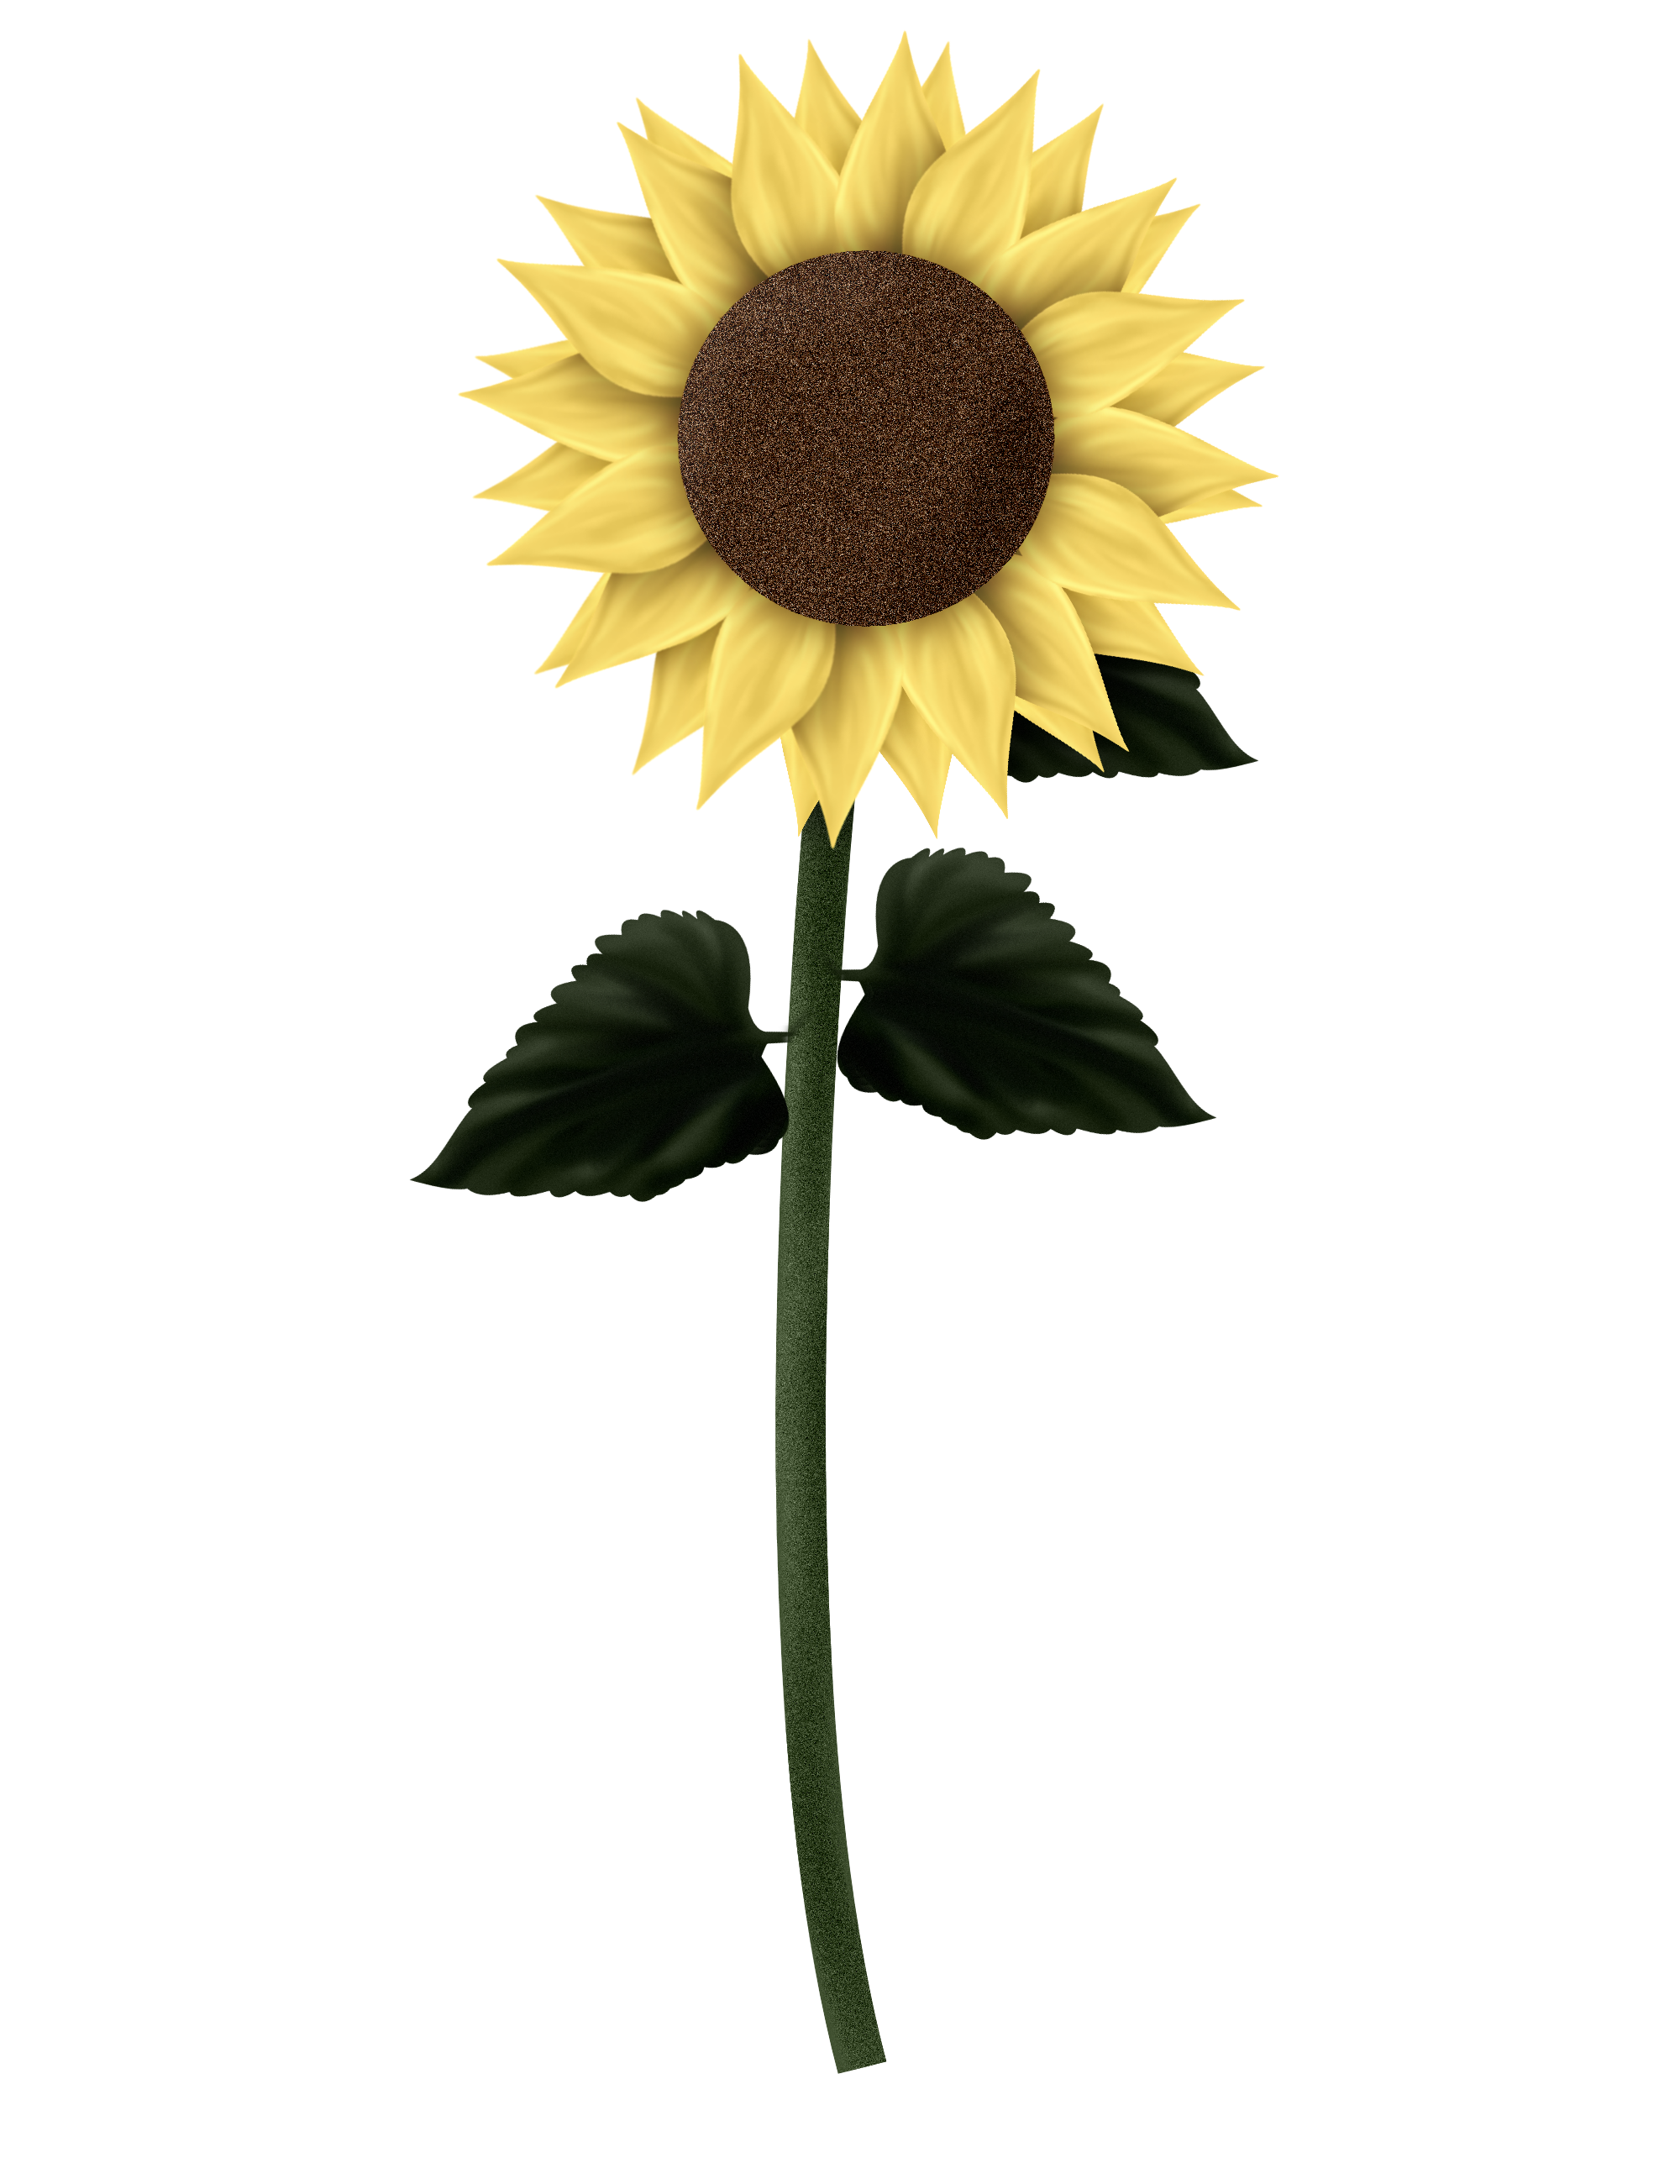 sunflowers png leave